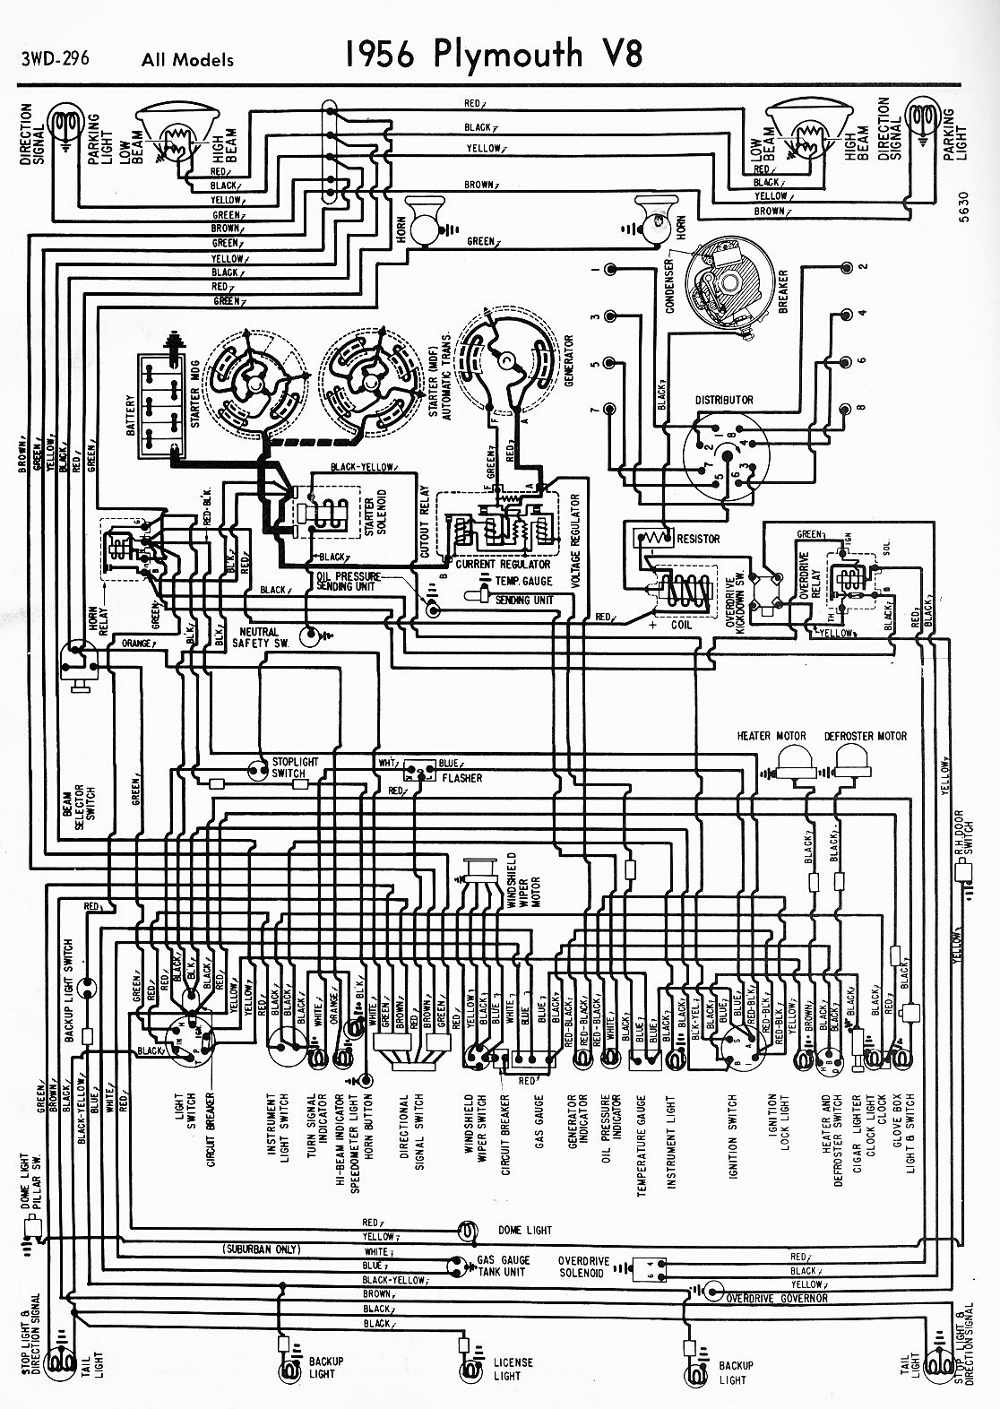 Ford Car Wiring Pictures To Pin On Pinterest PinsDaddy - 1959 ford f100 wiring diagram